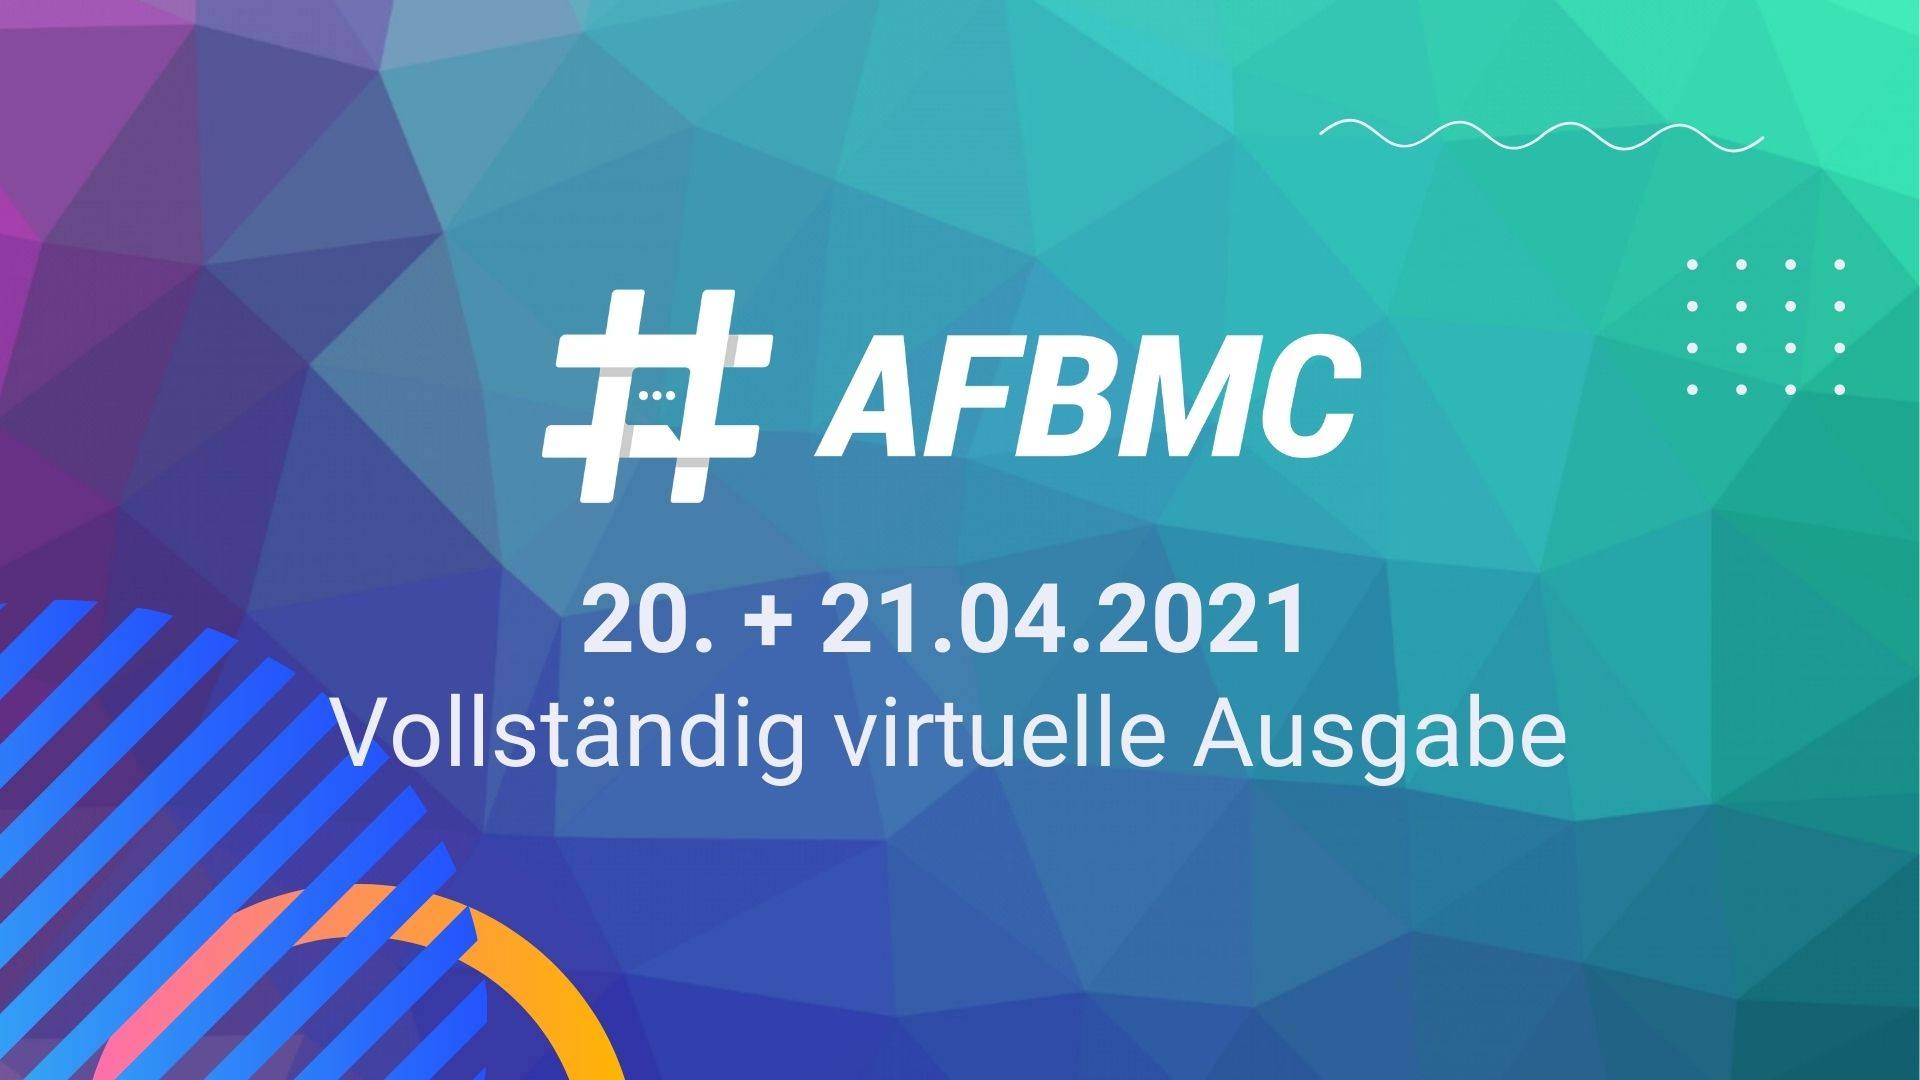 AFBMC 2021 - Allfacebook Marketing Conference